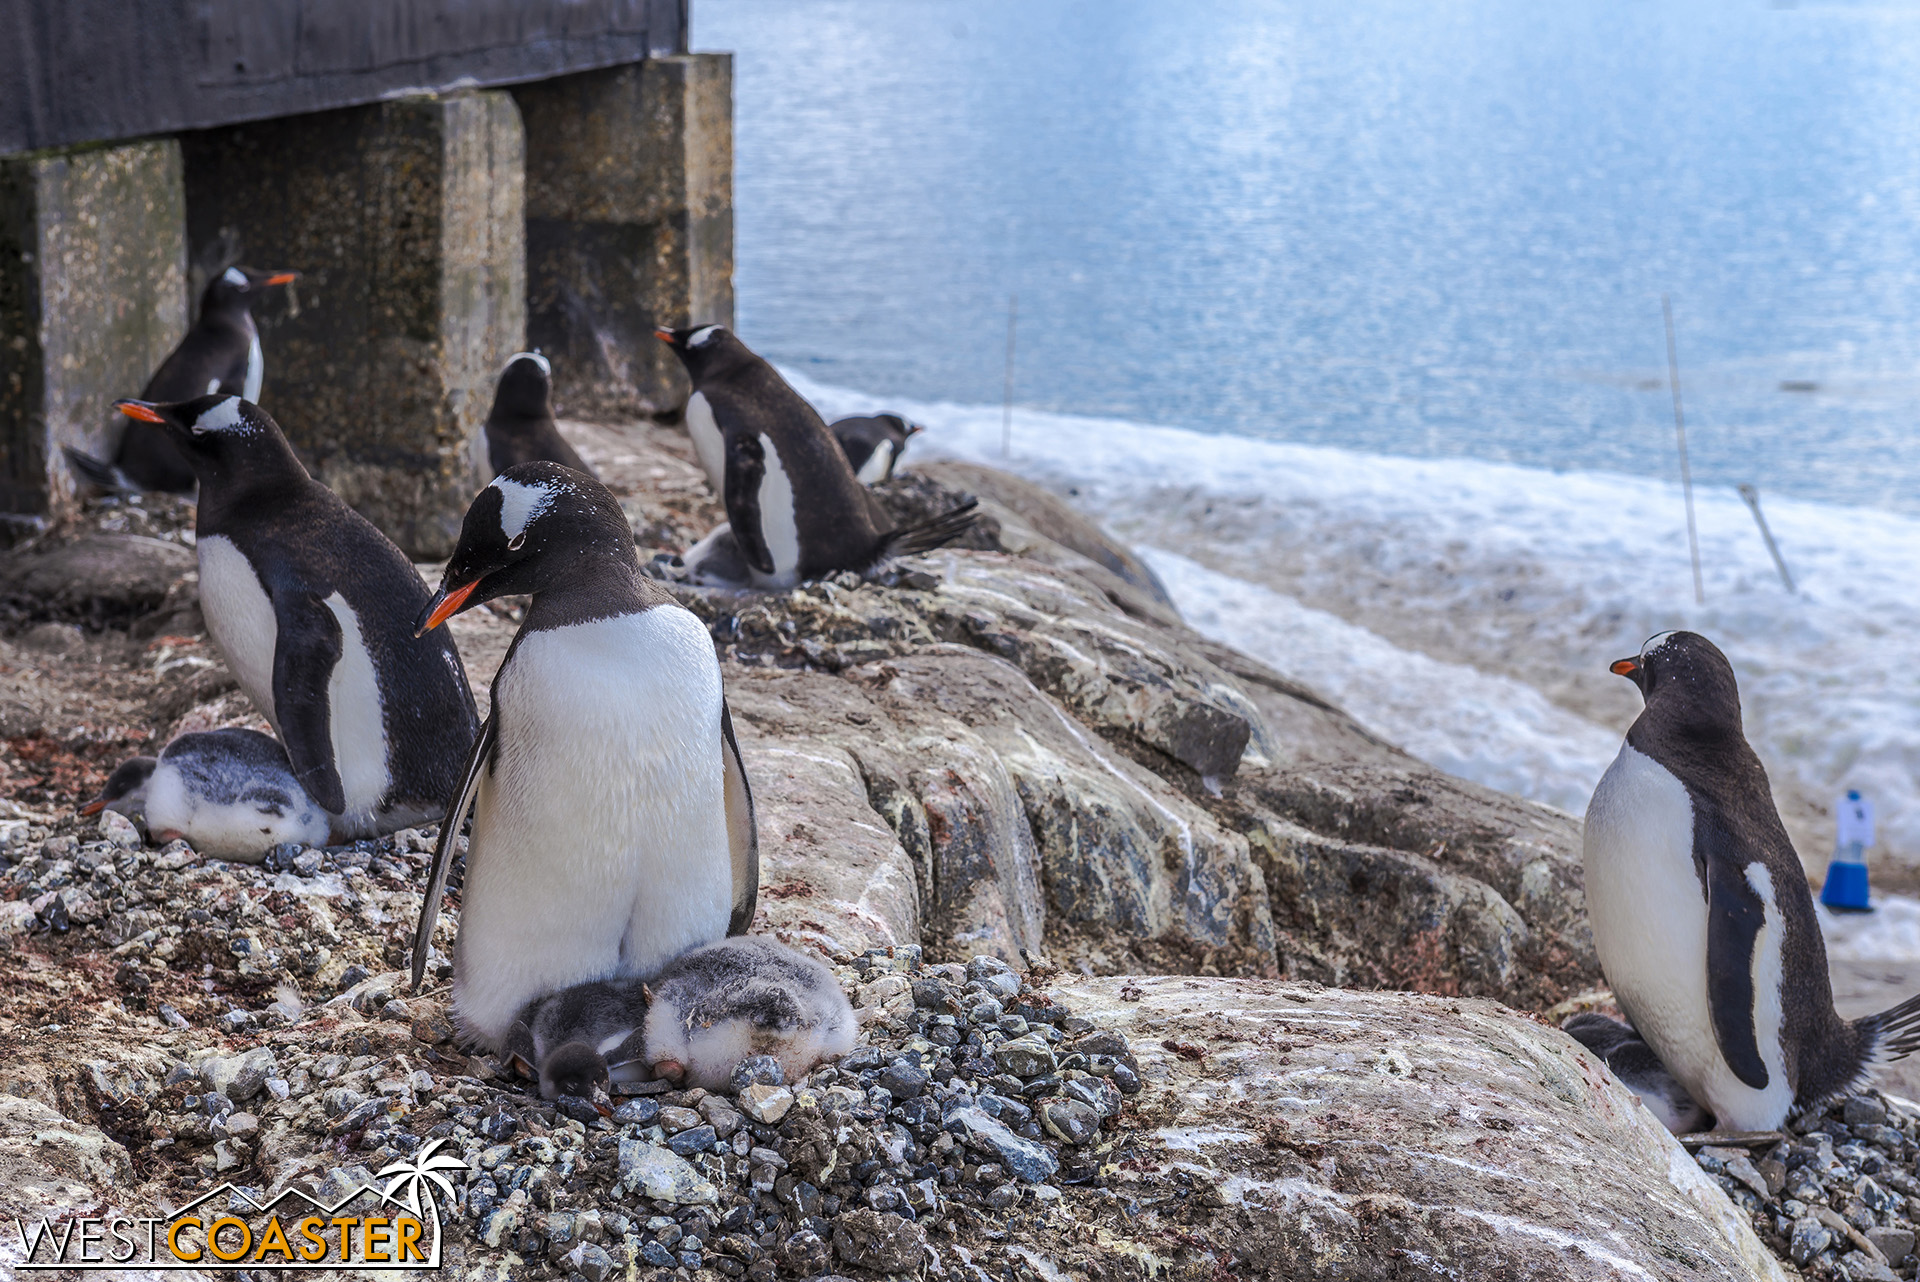 Penguins and penguin chicks nest just off the path.